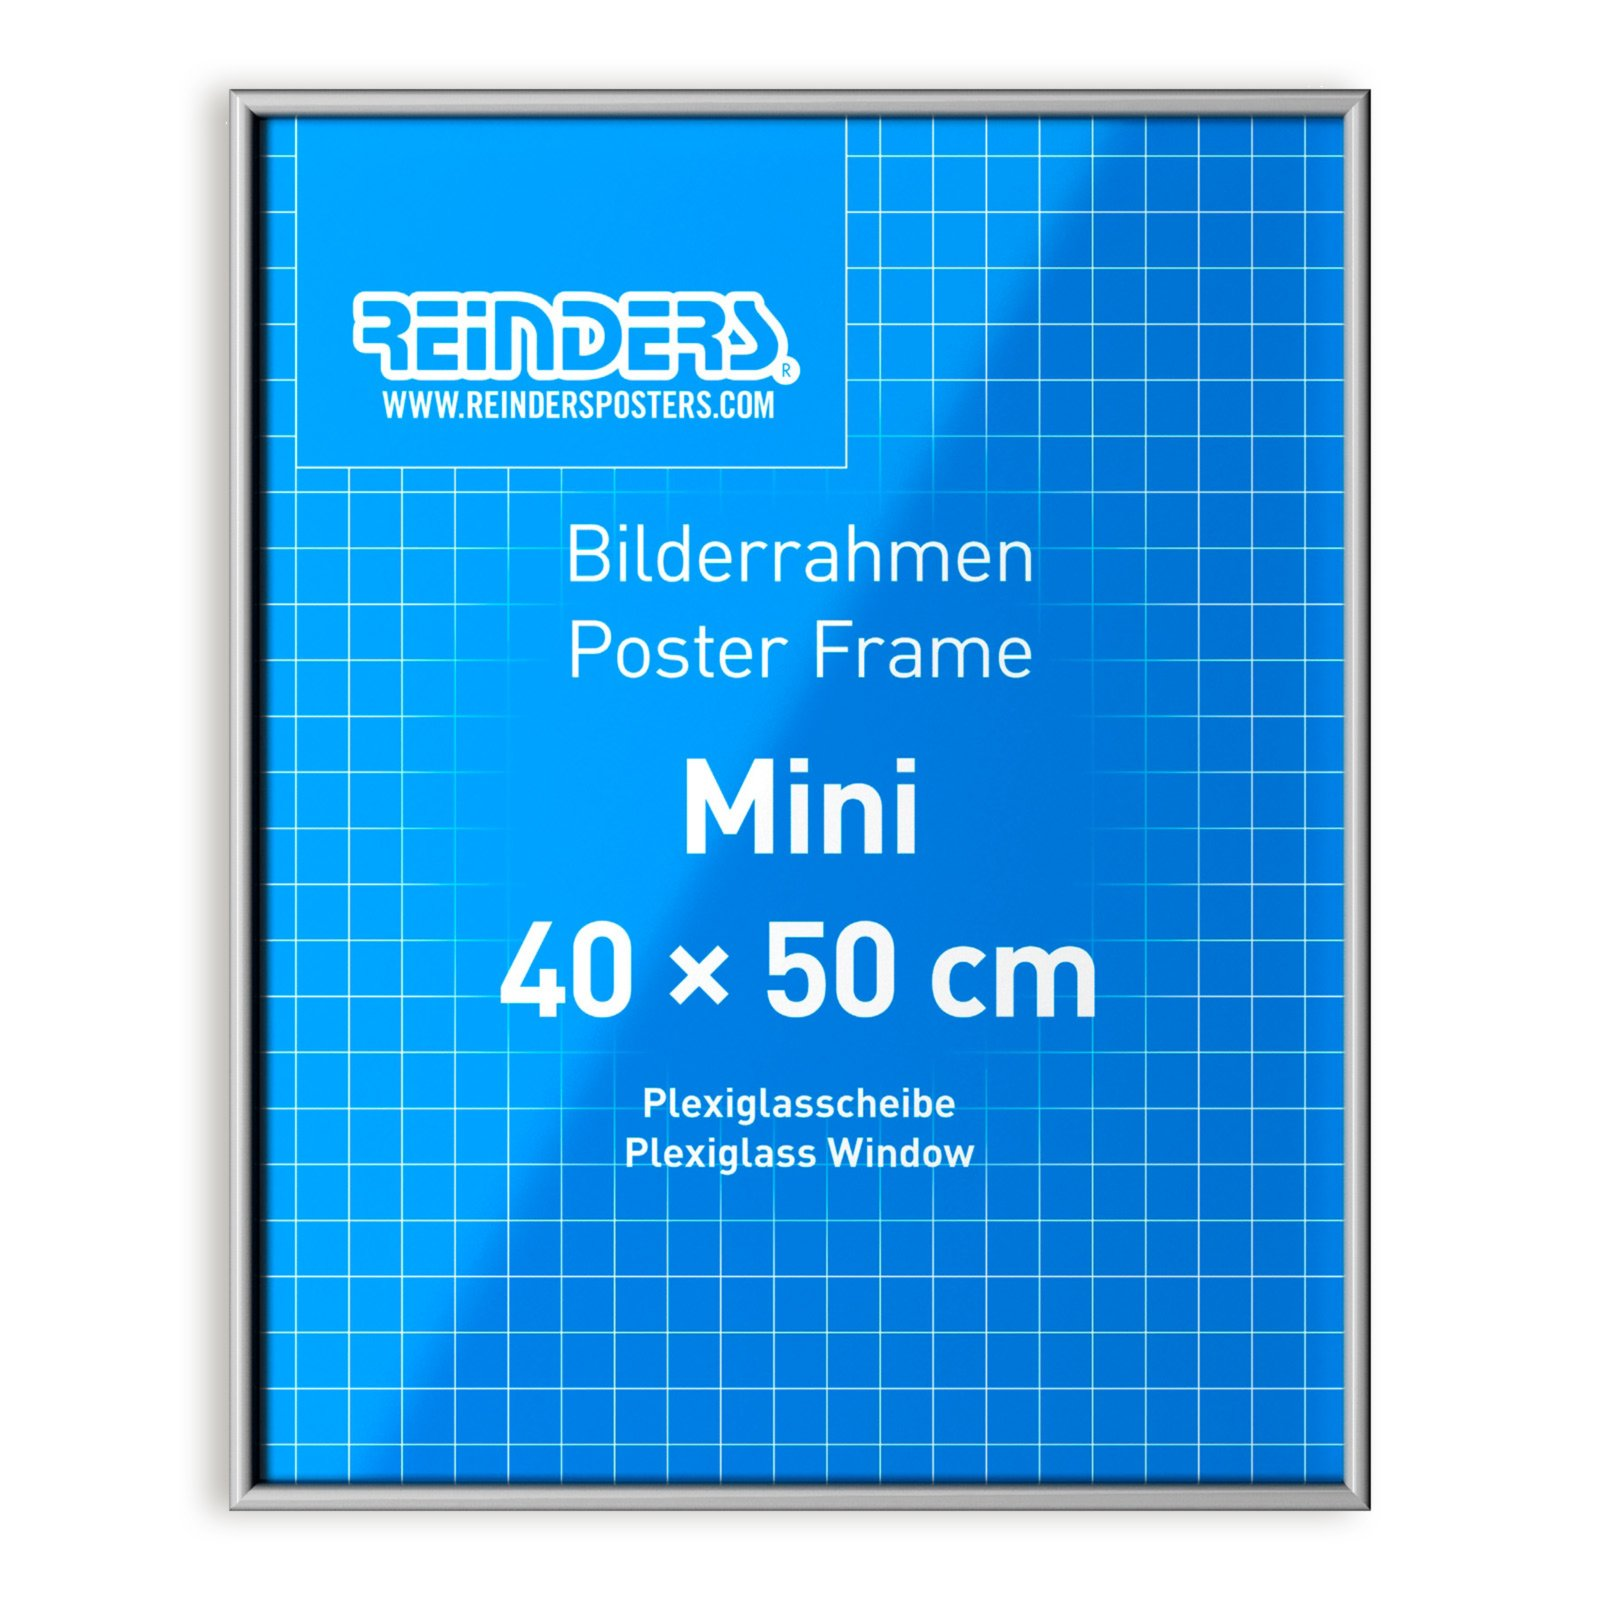 poster bilderrahmen silber 40x50cm posterrahmen deko artikel deko haushalt roller. Black Bedroom Furniture Sets. Home Design Ideas